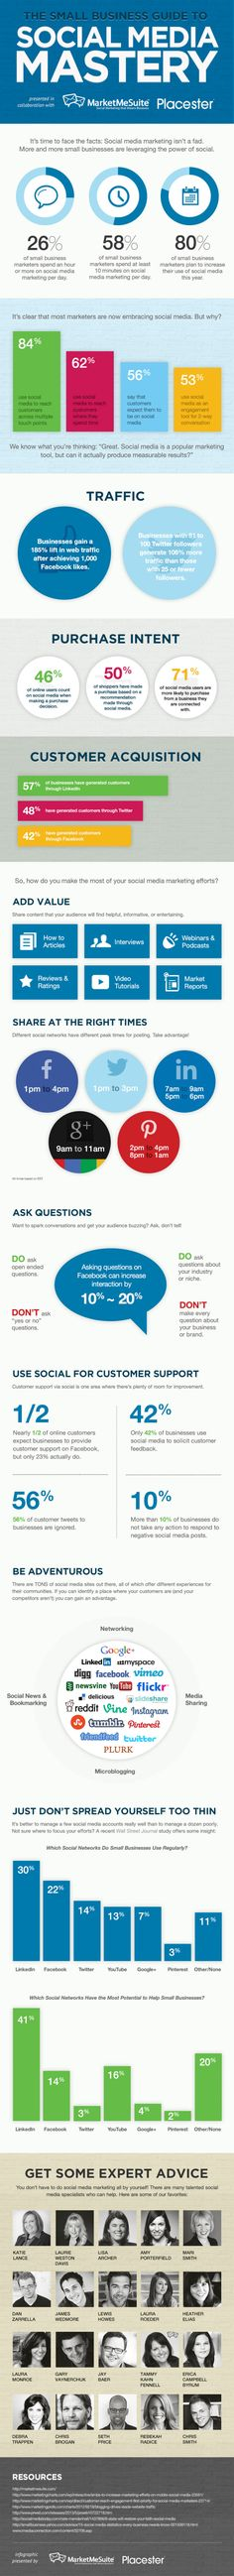 Infographic: Small Business Guide to Social Media Mastery